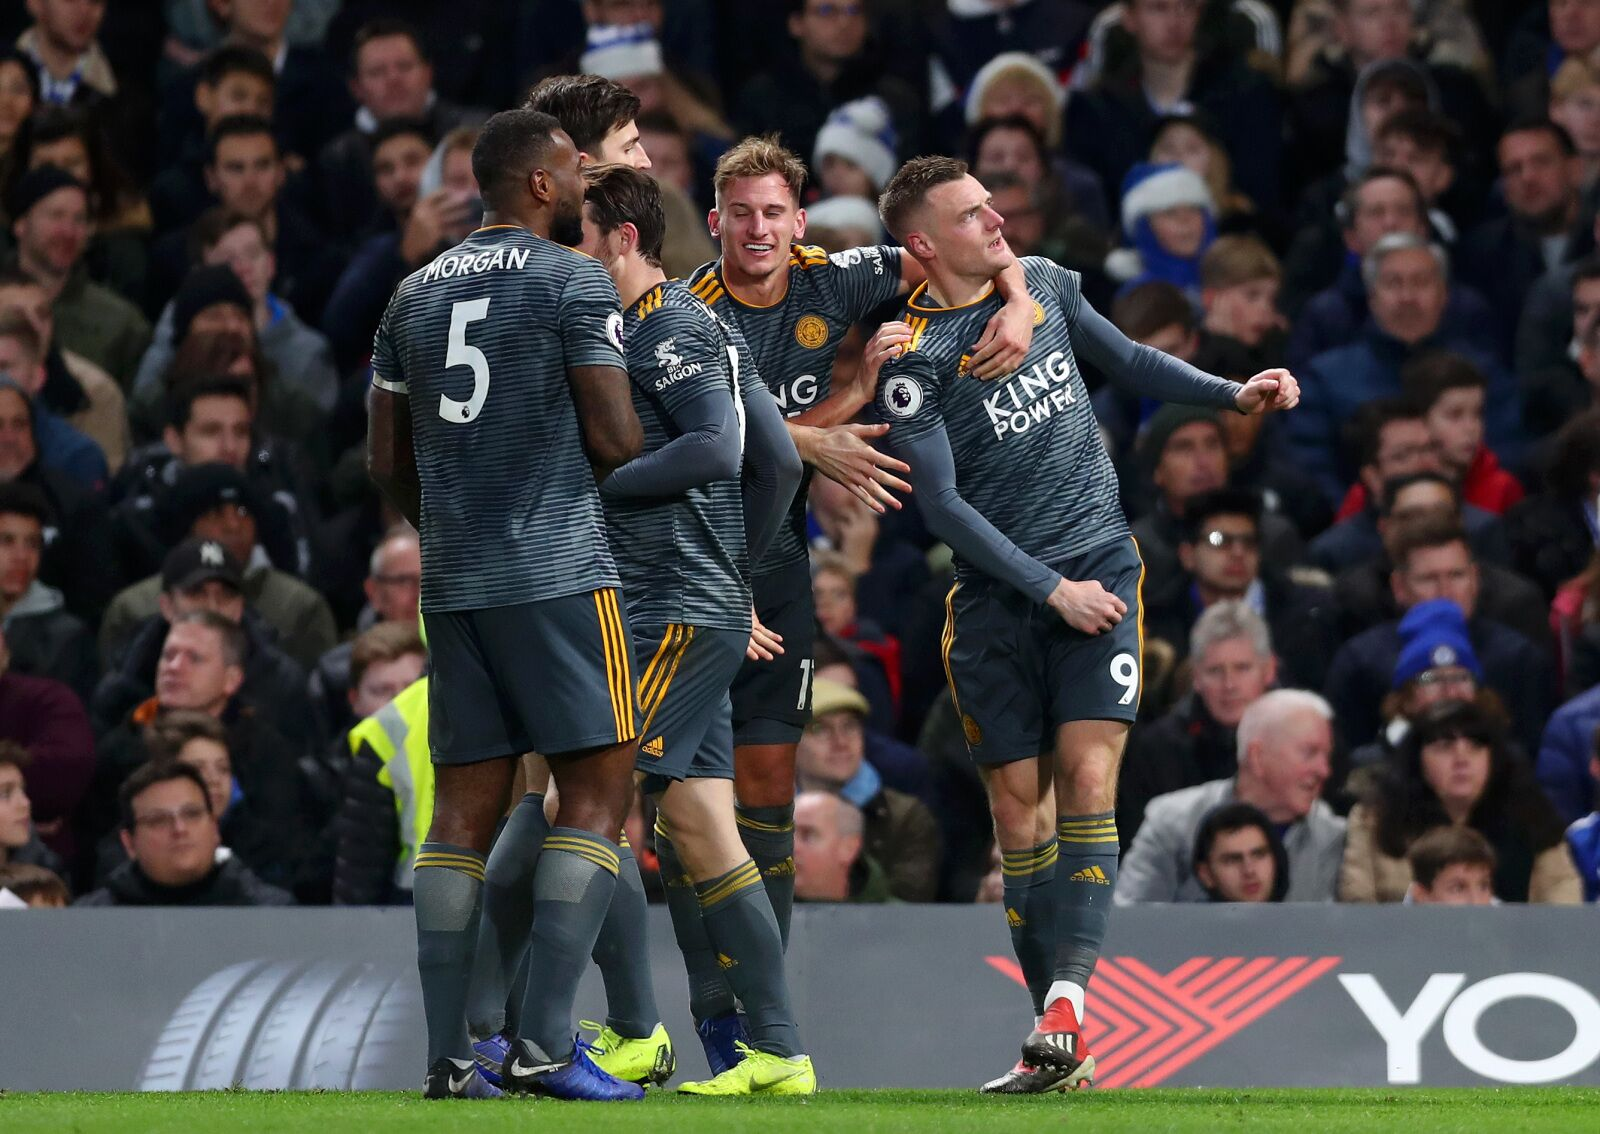 Preview: Leicester City look to give Chelsea the blues